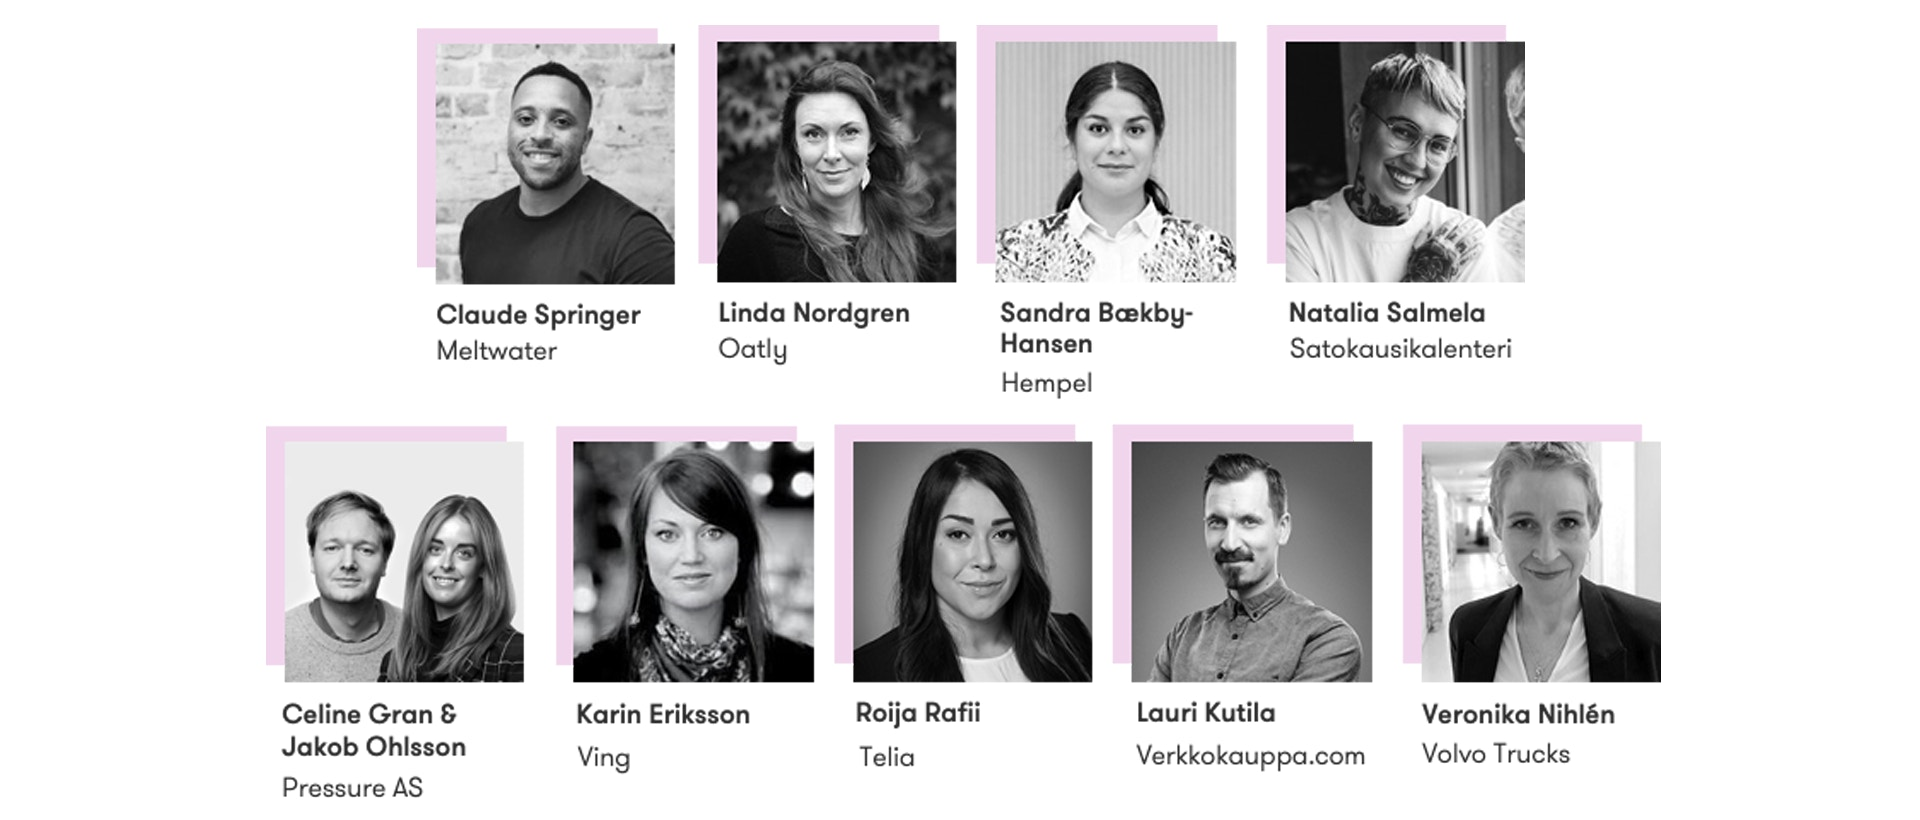 Featured speakers at the Nordic Meltwater Social Summit 2020